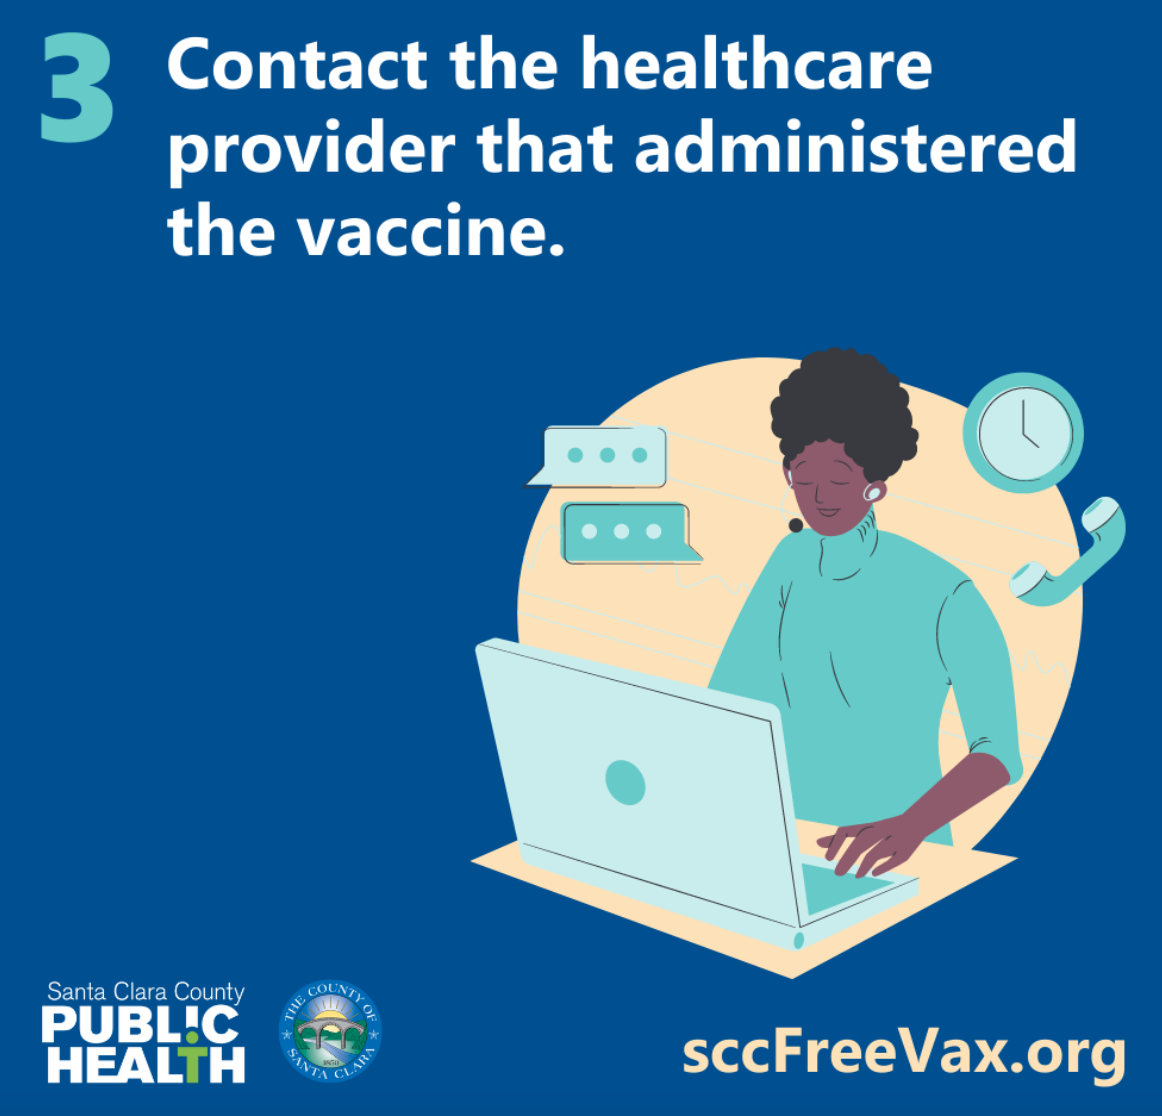 contact the healthcare provider that administered the vaccine